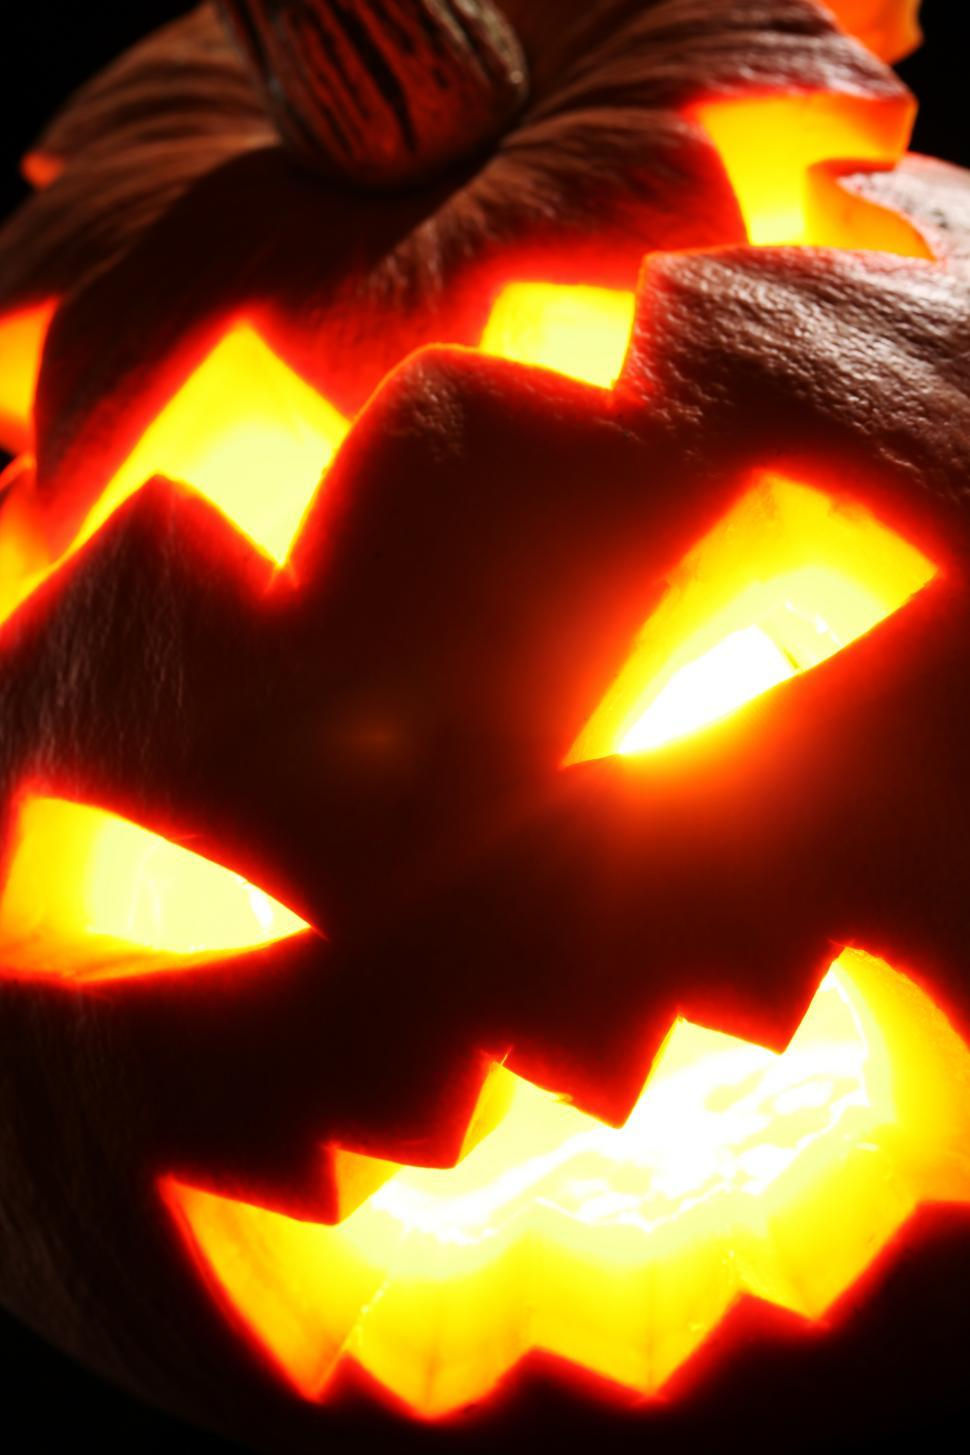 Download Free Stock Photo of Close up of scary glowing jack o lantern face